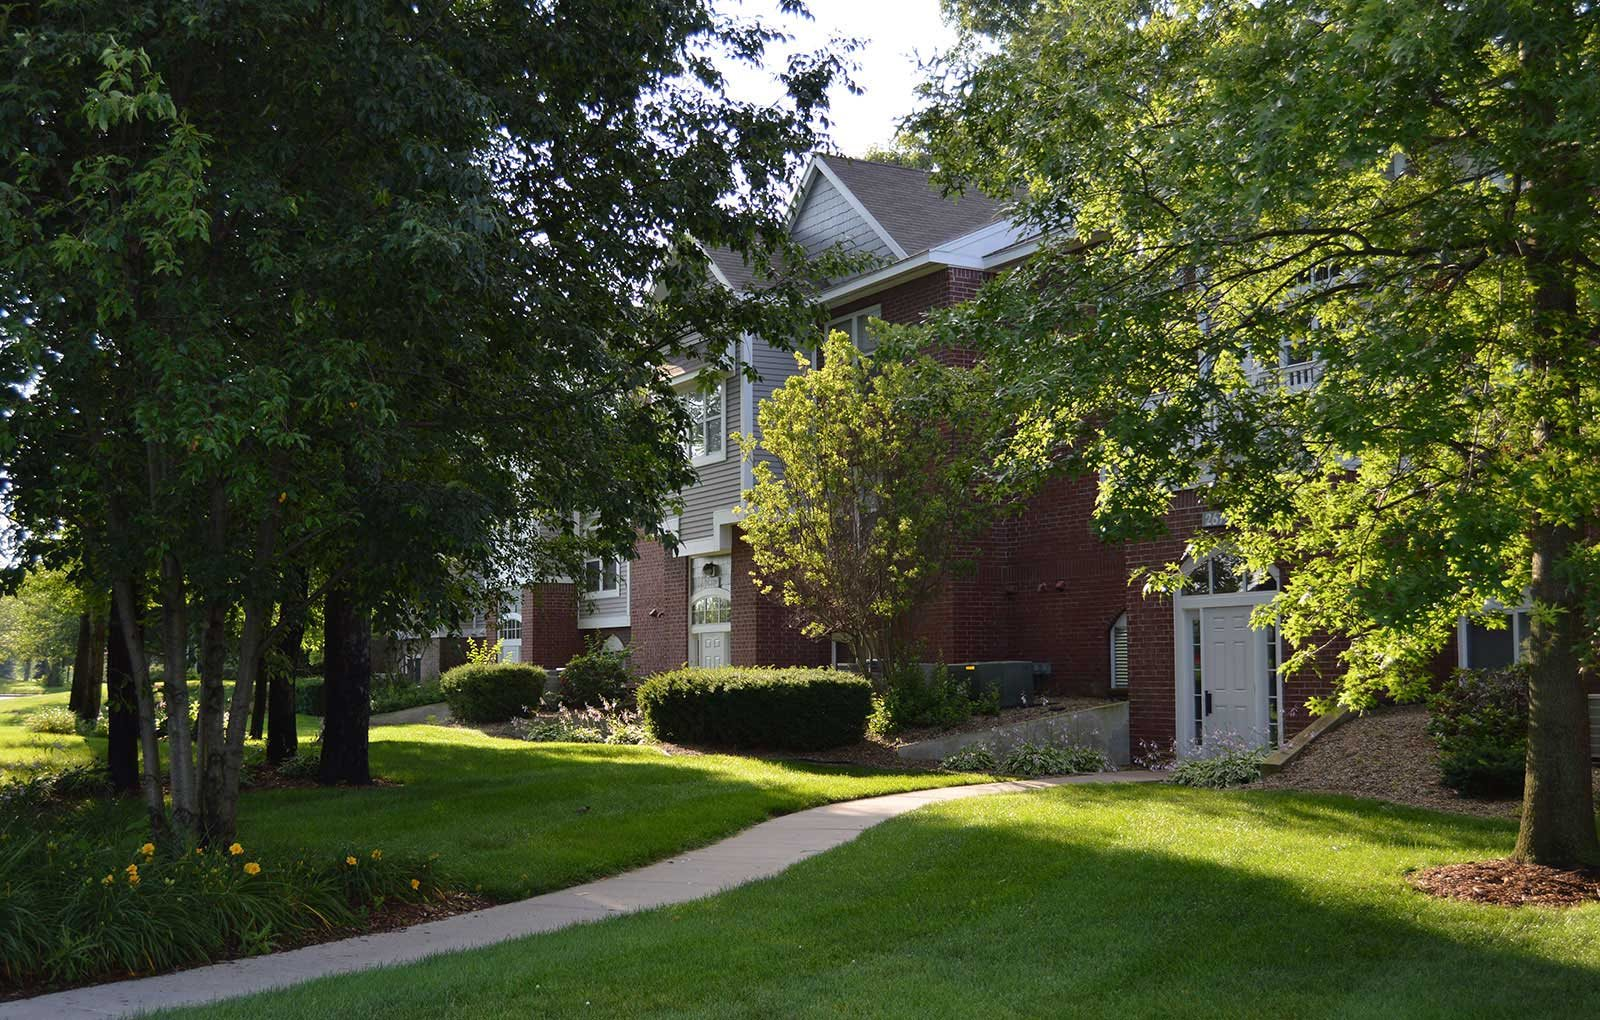 Maintained Landscaping at The Highlands Apartments, Indiana